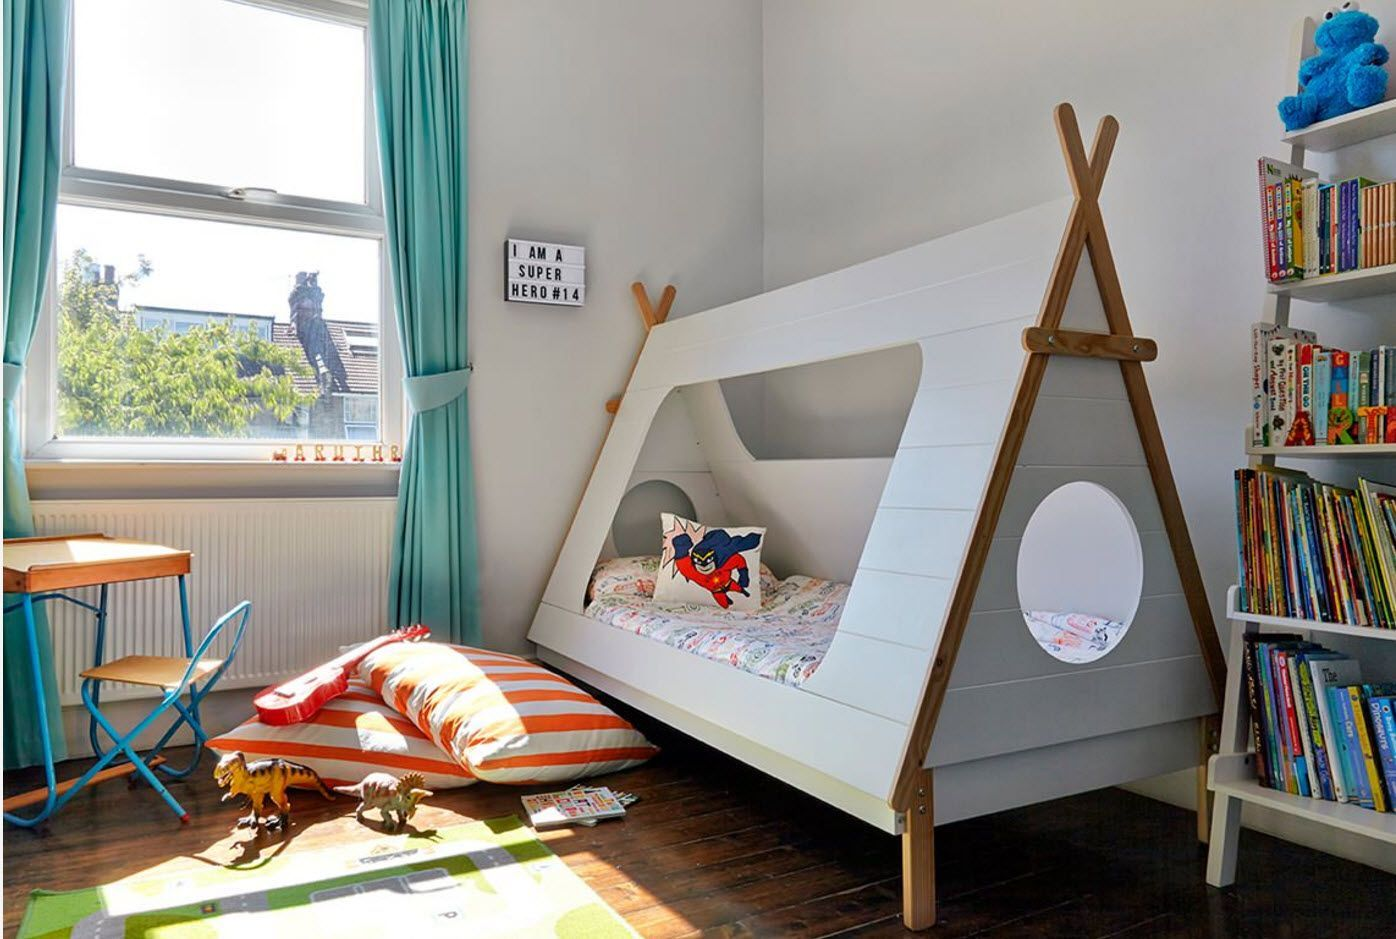 Wigwam-like bed for the young adventurer